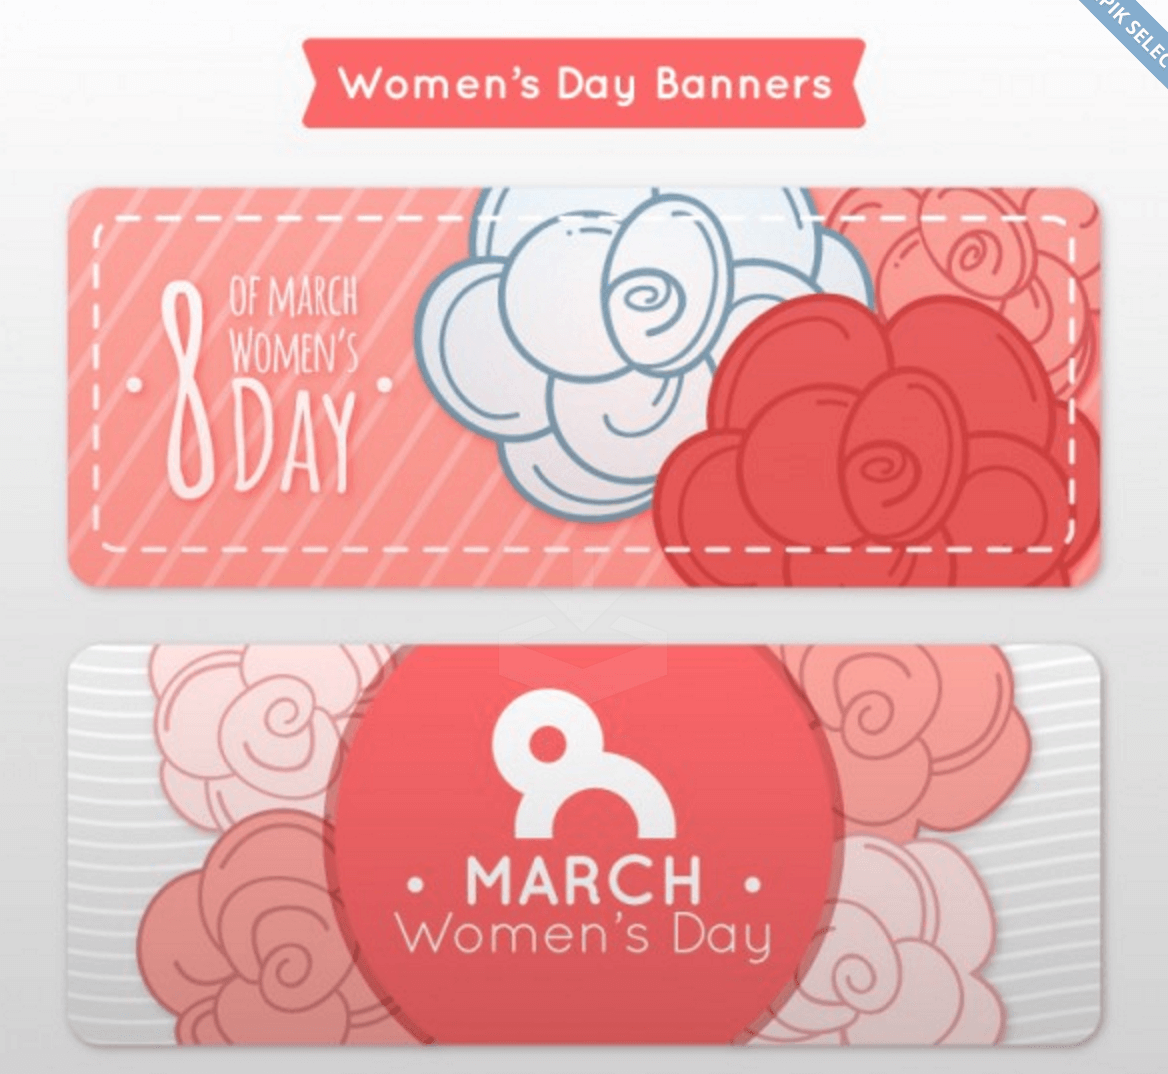 A Set of Banners for Womens Day